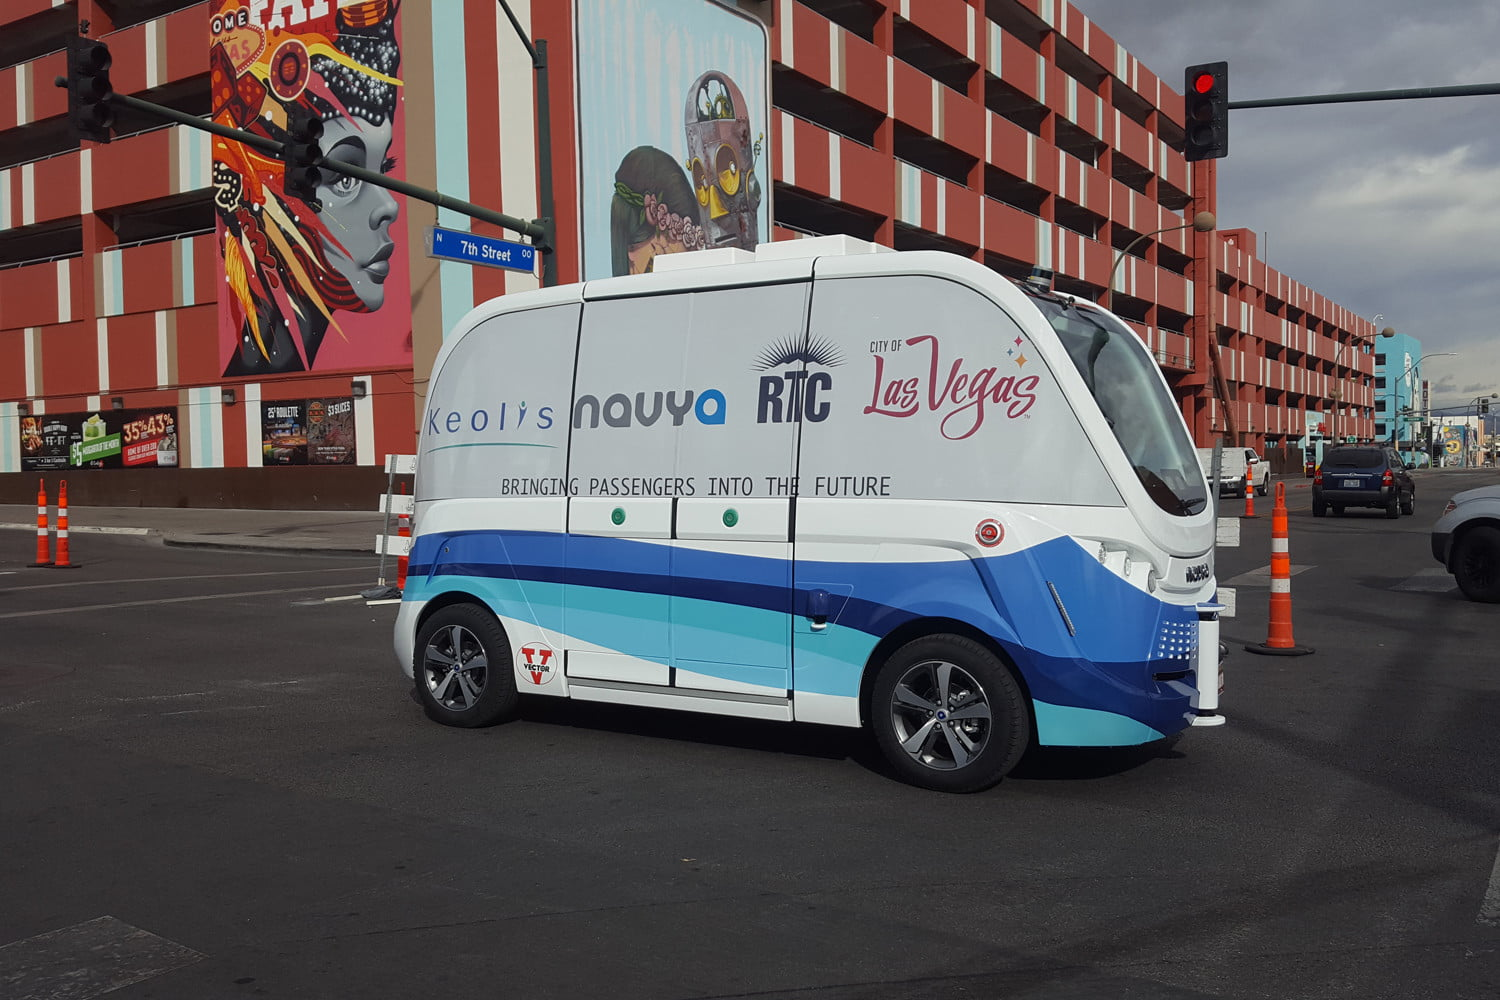 Self-driving buses are now shuttling folks around downtown Las Vegas